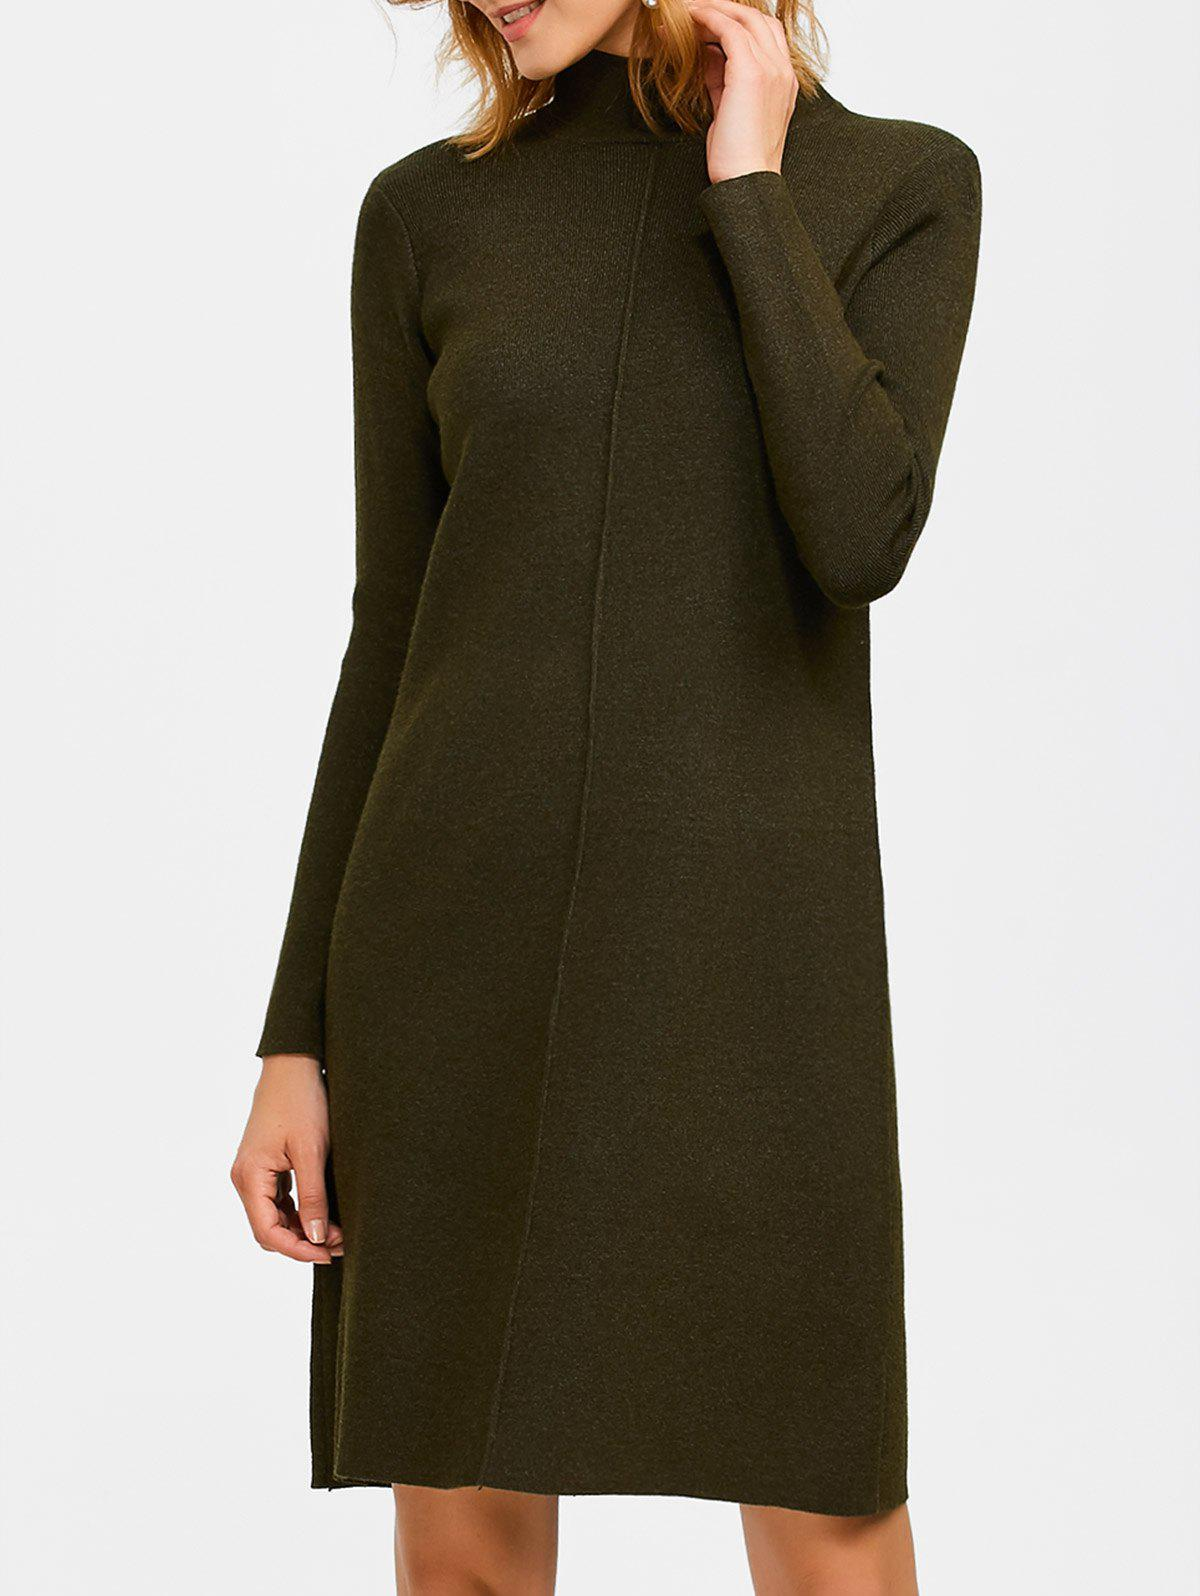 Trendy Knee Length Mock Neck Sweater Dress